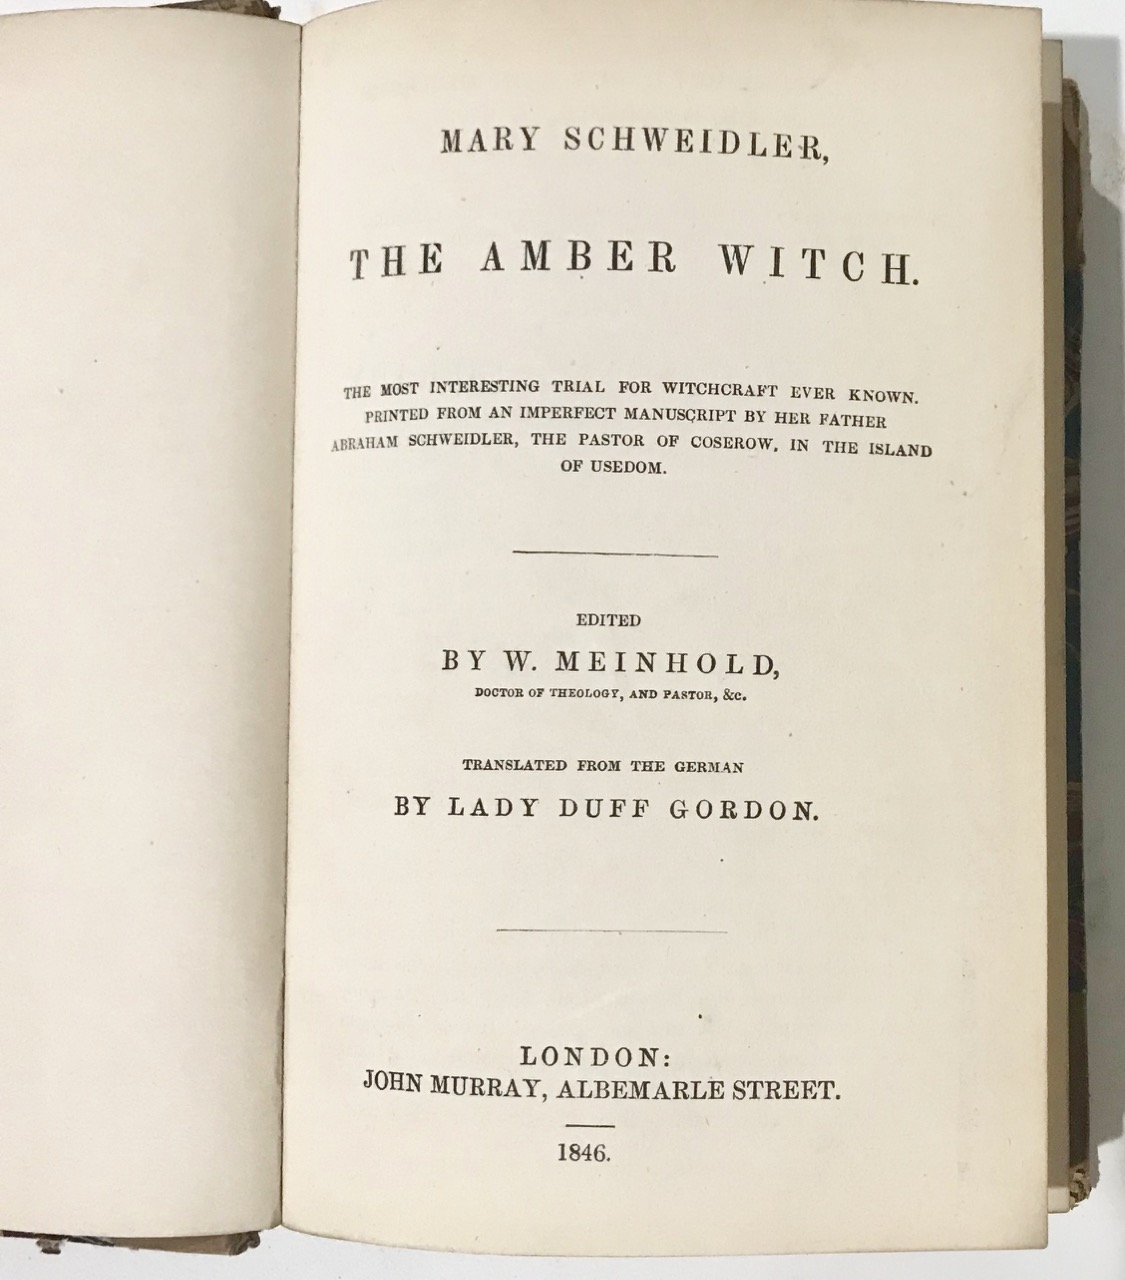 Image for THE AMBER WITCH. The Most Interesting Trial for Witchcraft Ever Known, Printed from an Imperfect Manuscript By Her Father Abraham Schweidler, the Pastor of Coserow, in the Island of Usedom [Bound With Cromwell & Bunyan]